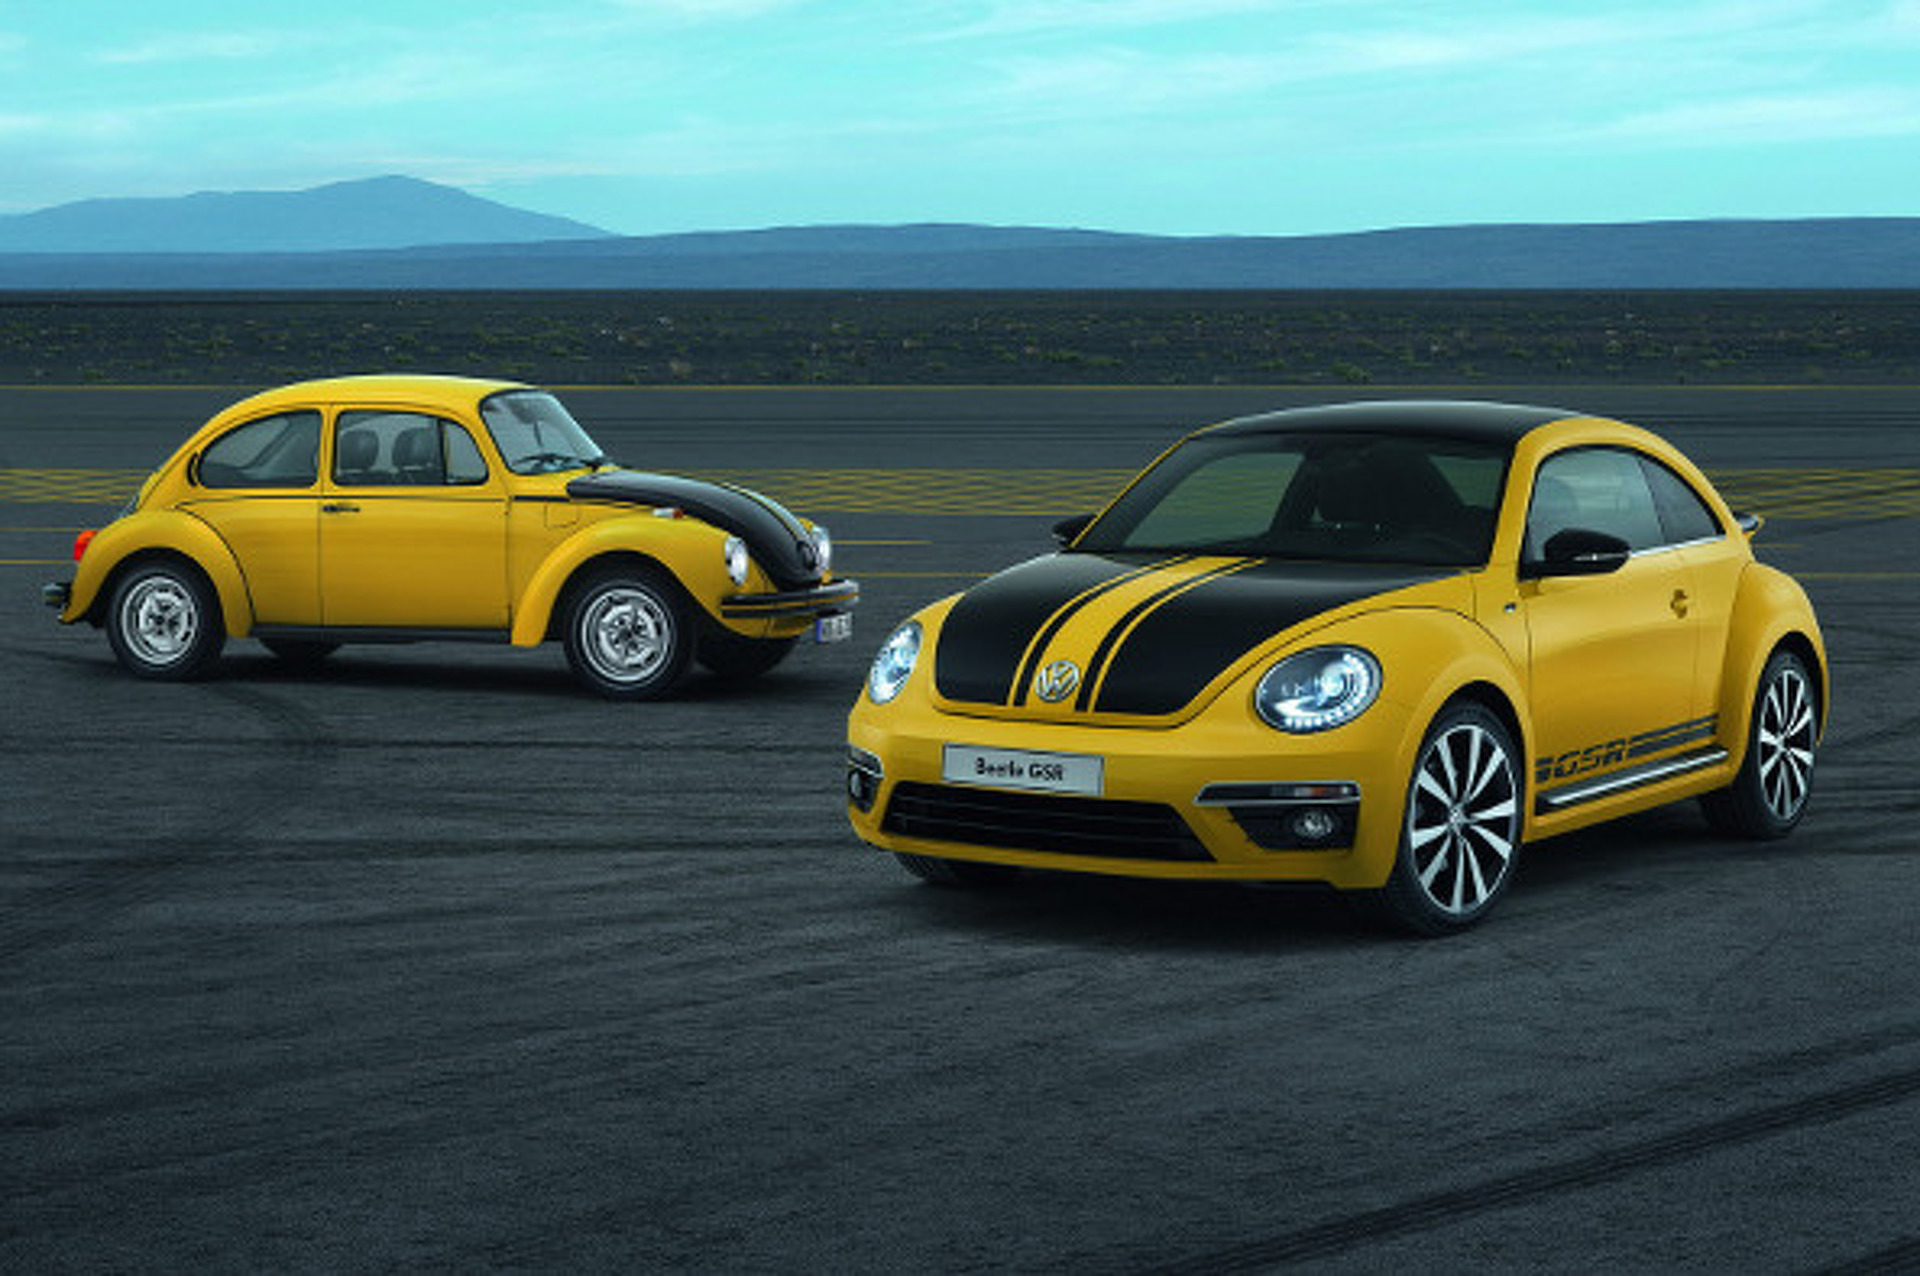 2014 Volkswagen Beetle GSR: A Closer Look at V-Dub's Guilty Pleasure